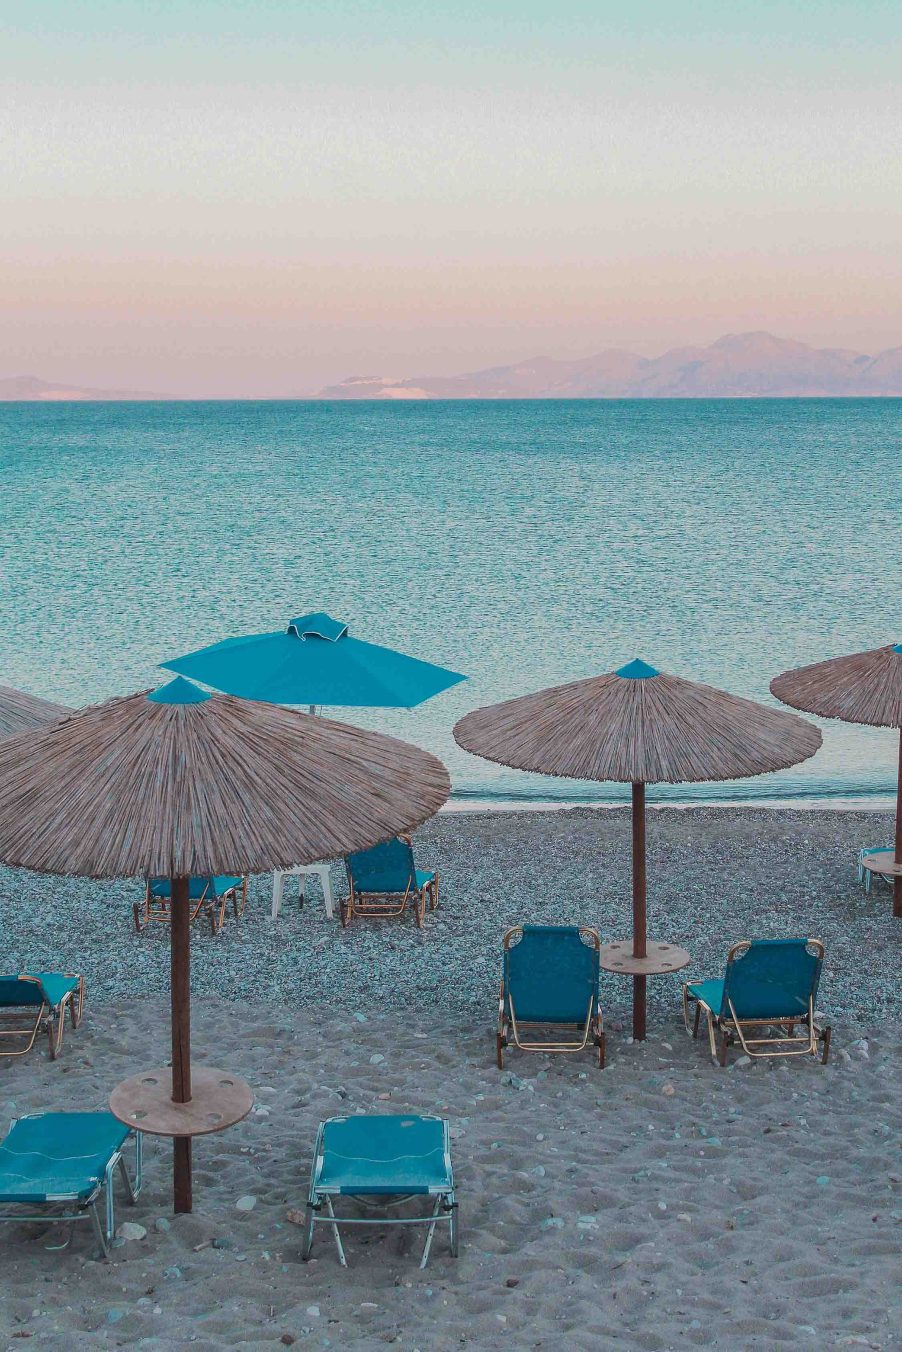 GREECE ON A BUDGET: BE-'KOS' WE CAN'T ALL AFFORD PICTURESQUE SANTORINI